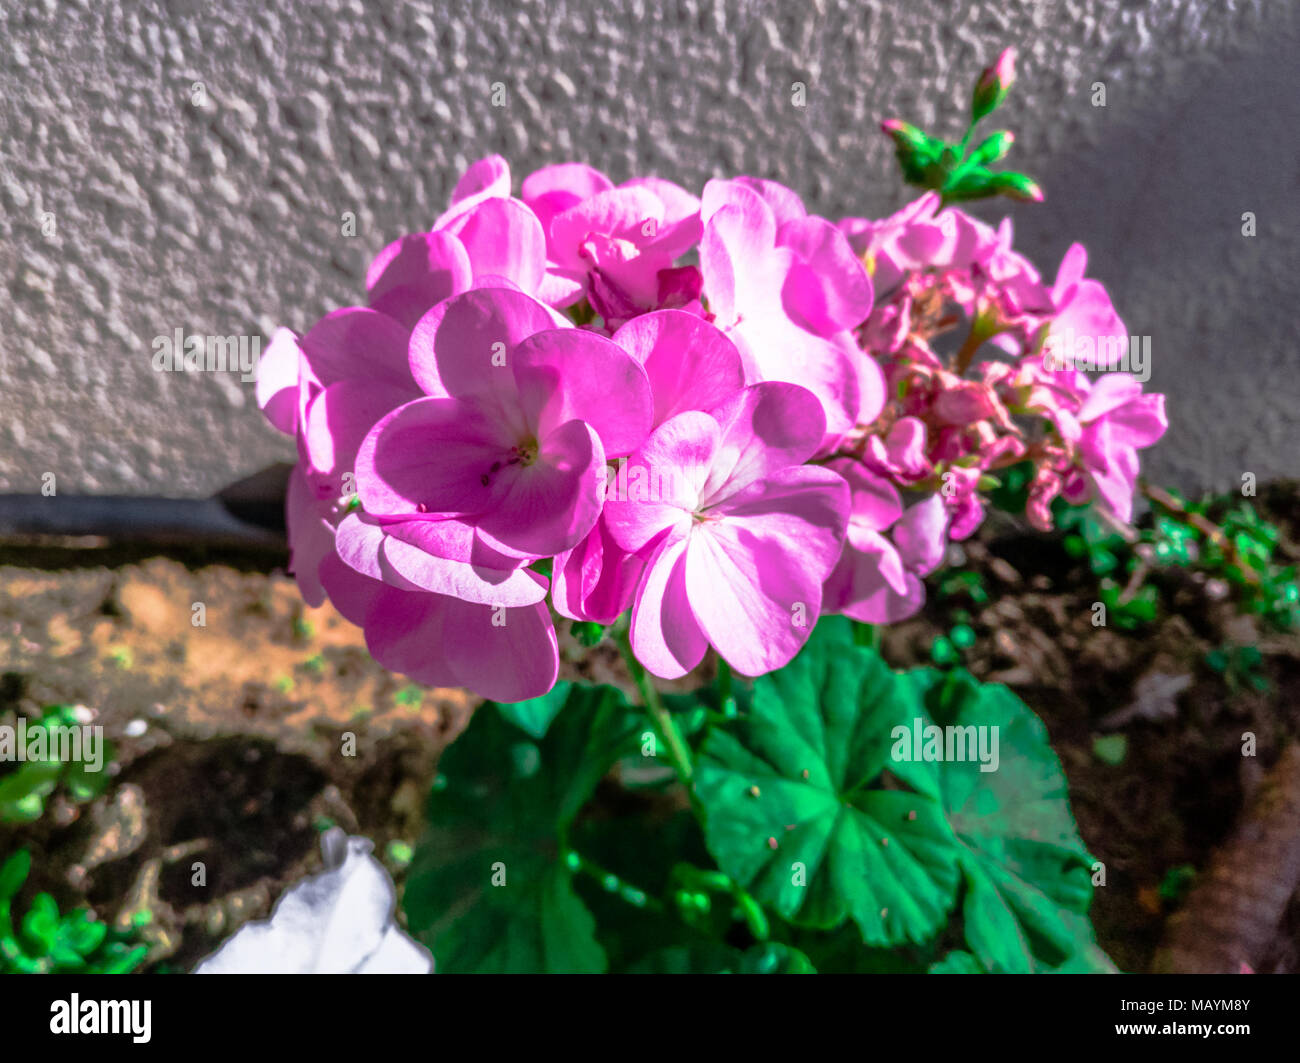 The most stunning beautiful and romantic natural fresh pink flowers the most stunning beautiful and romantic natural fresh pink flowers for love and gifts with green leaves in muddy pot in a flowers garden center for s izmirmasajfo